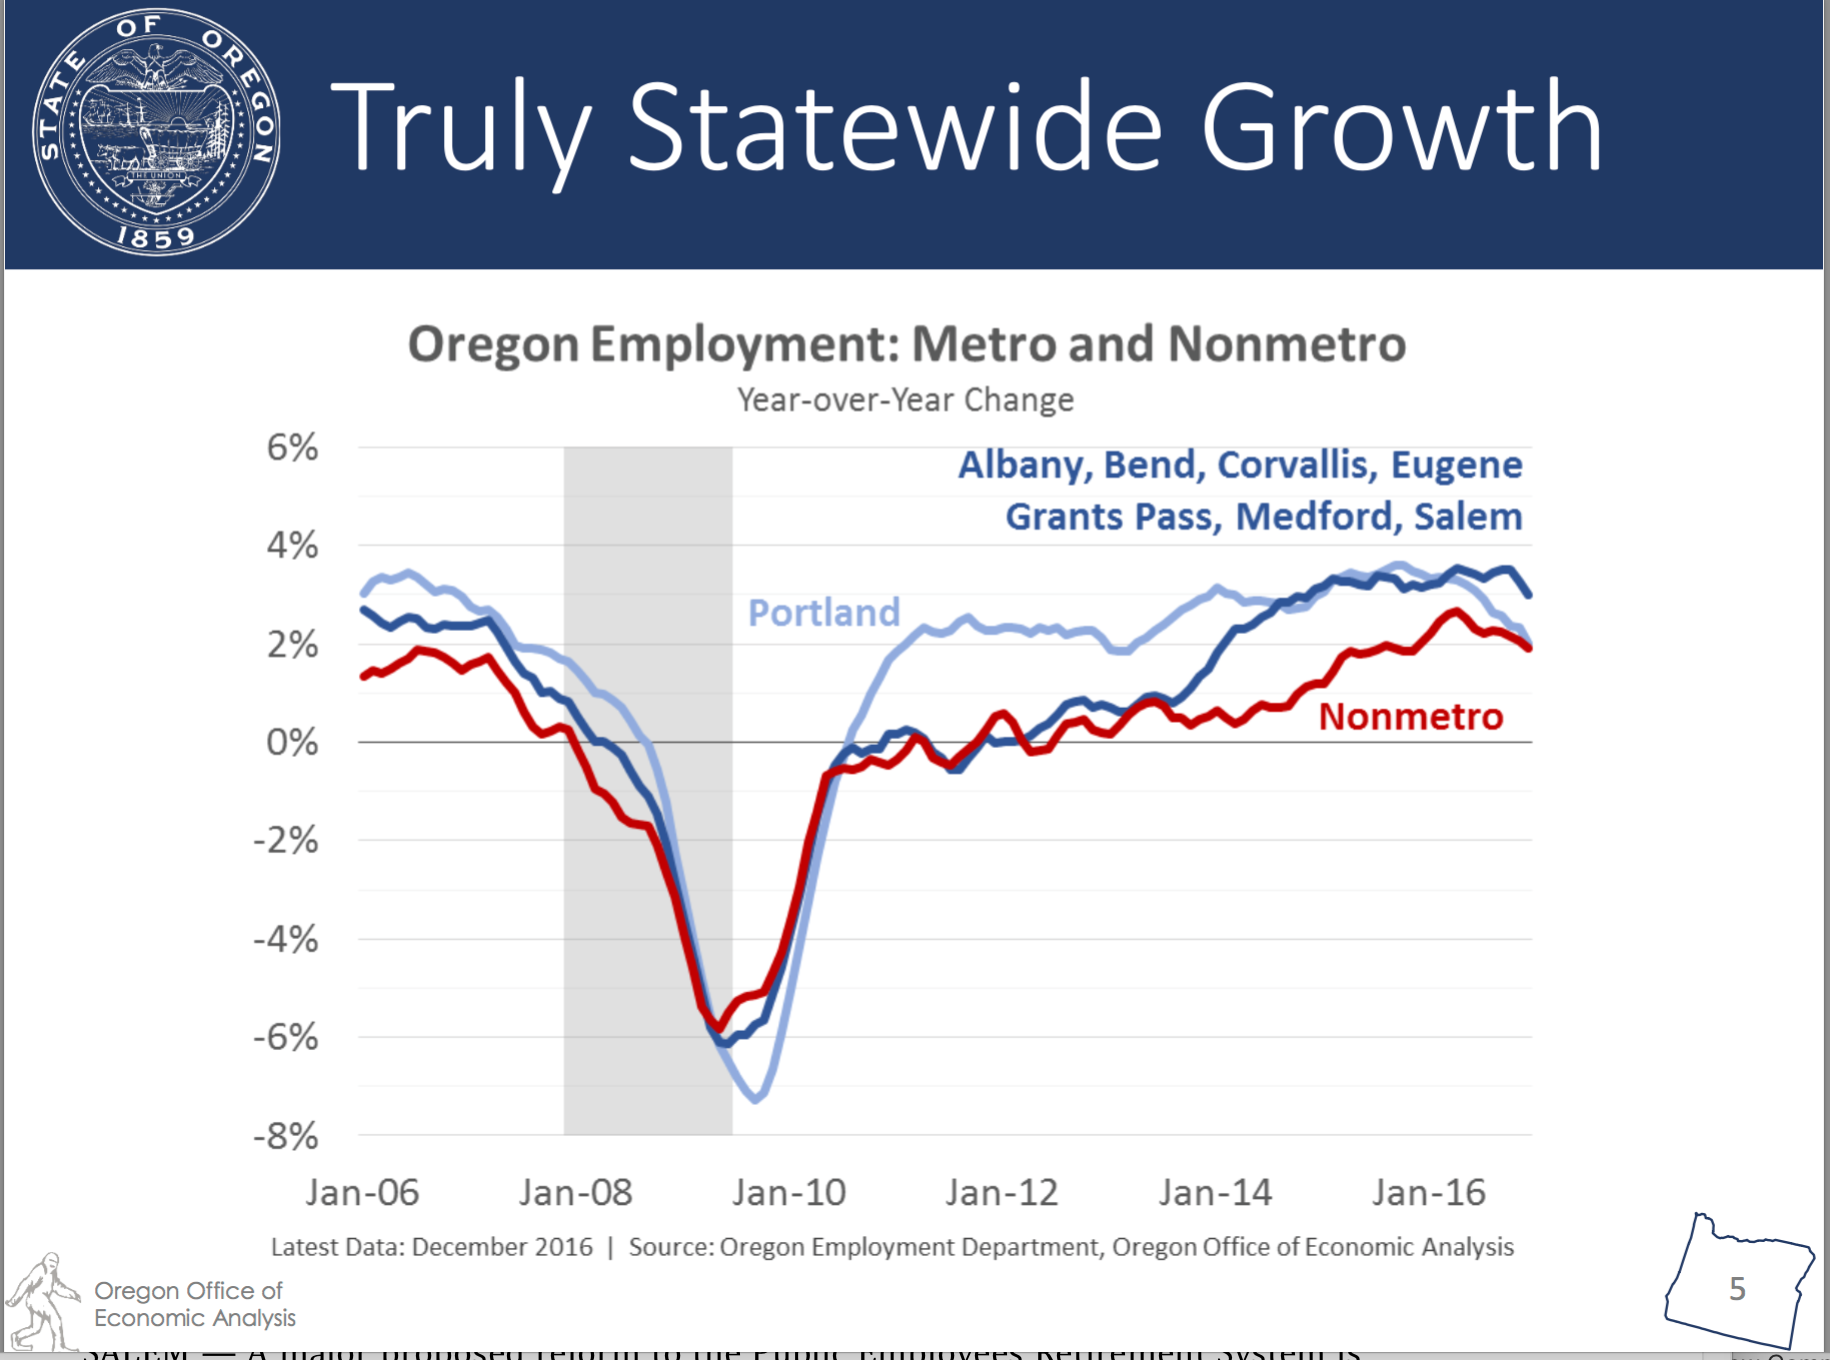 Media coverage of Oregon's quarterly economic and revenue outlook tends to focus on whether net state revenues have gone up or down since the last forecast. But that overlooks a lot of other interesting nuggets mined by the state economists who generate the report.